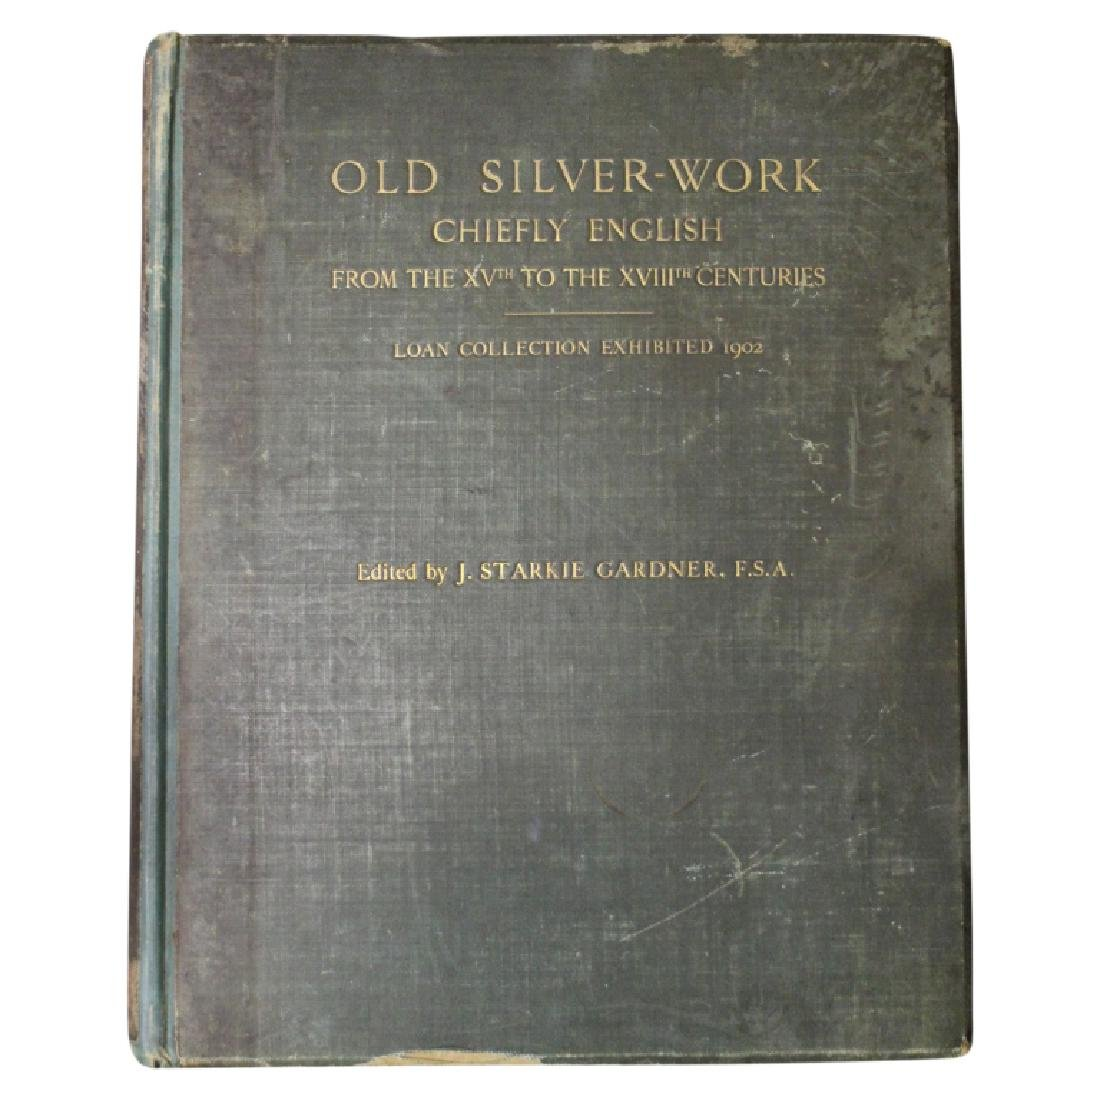 Old Silver-Work Chiefly English 1902